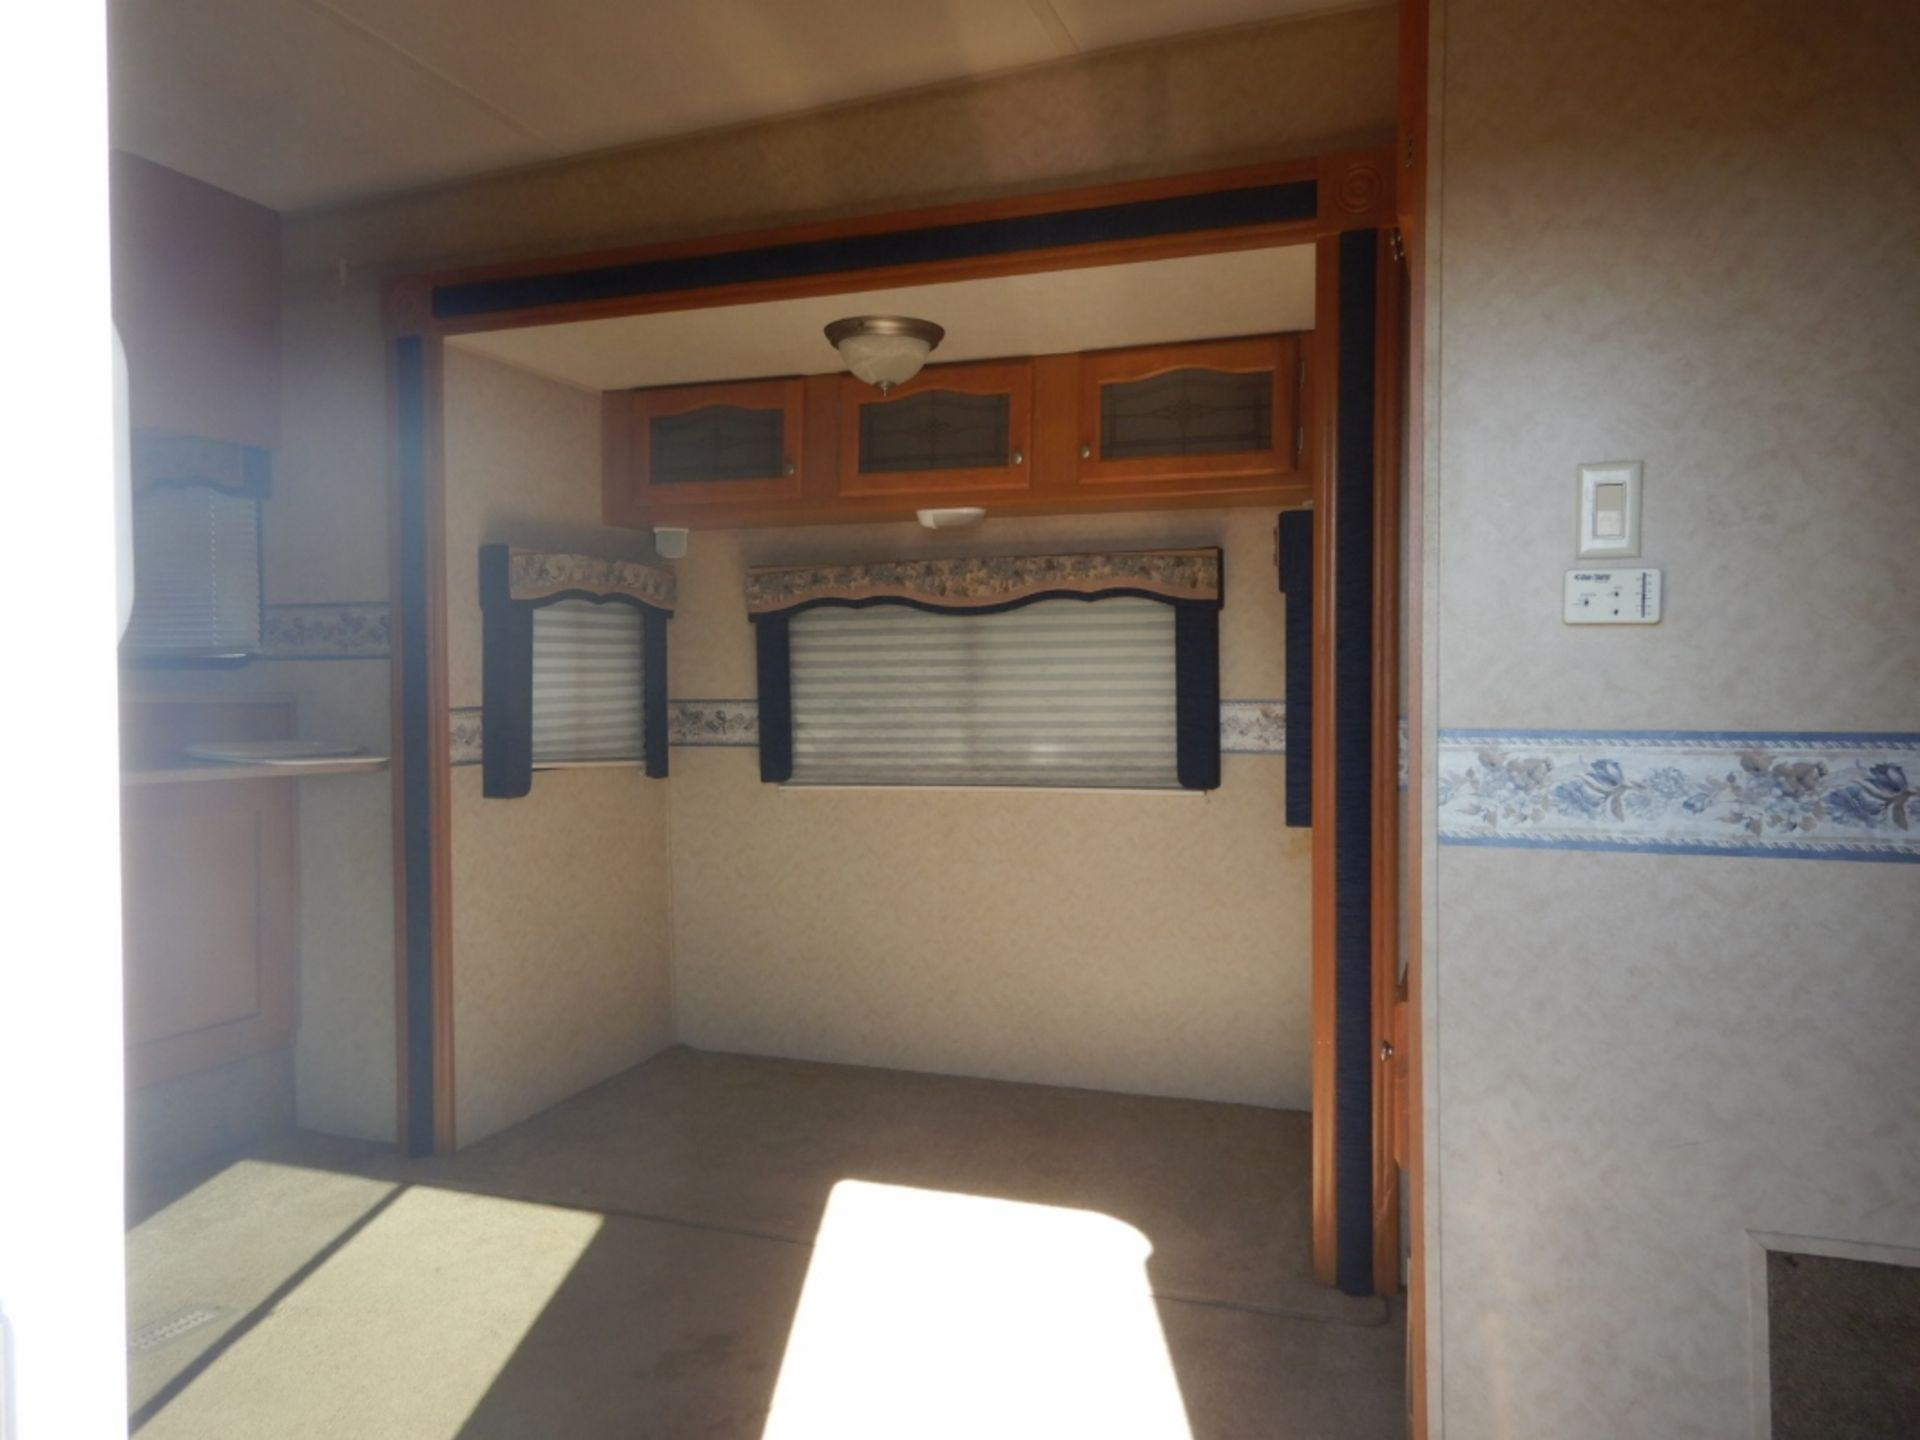 2006 DUTCHMEN DENALI 31RGBS/M5 5W HOLIDAY RV TRAILER S/N 47CFD1S226P616039 W/3-SLIDE-OUTS, AWNING, - Image 10 of 16